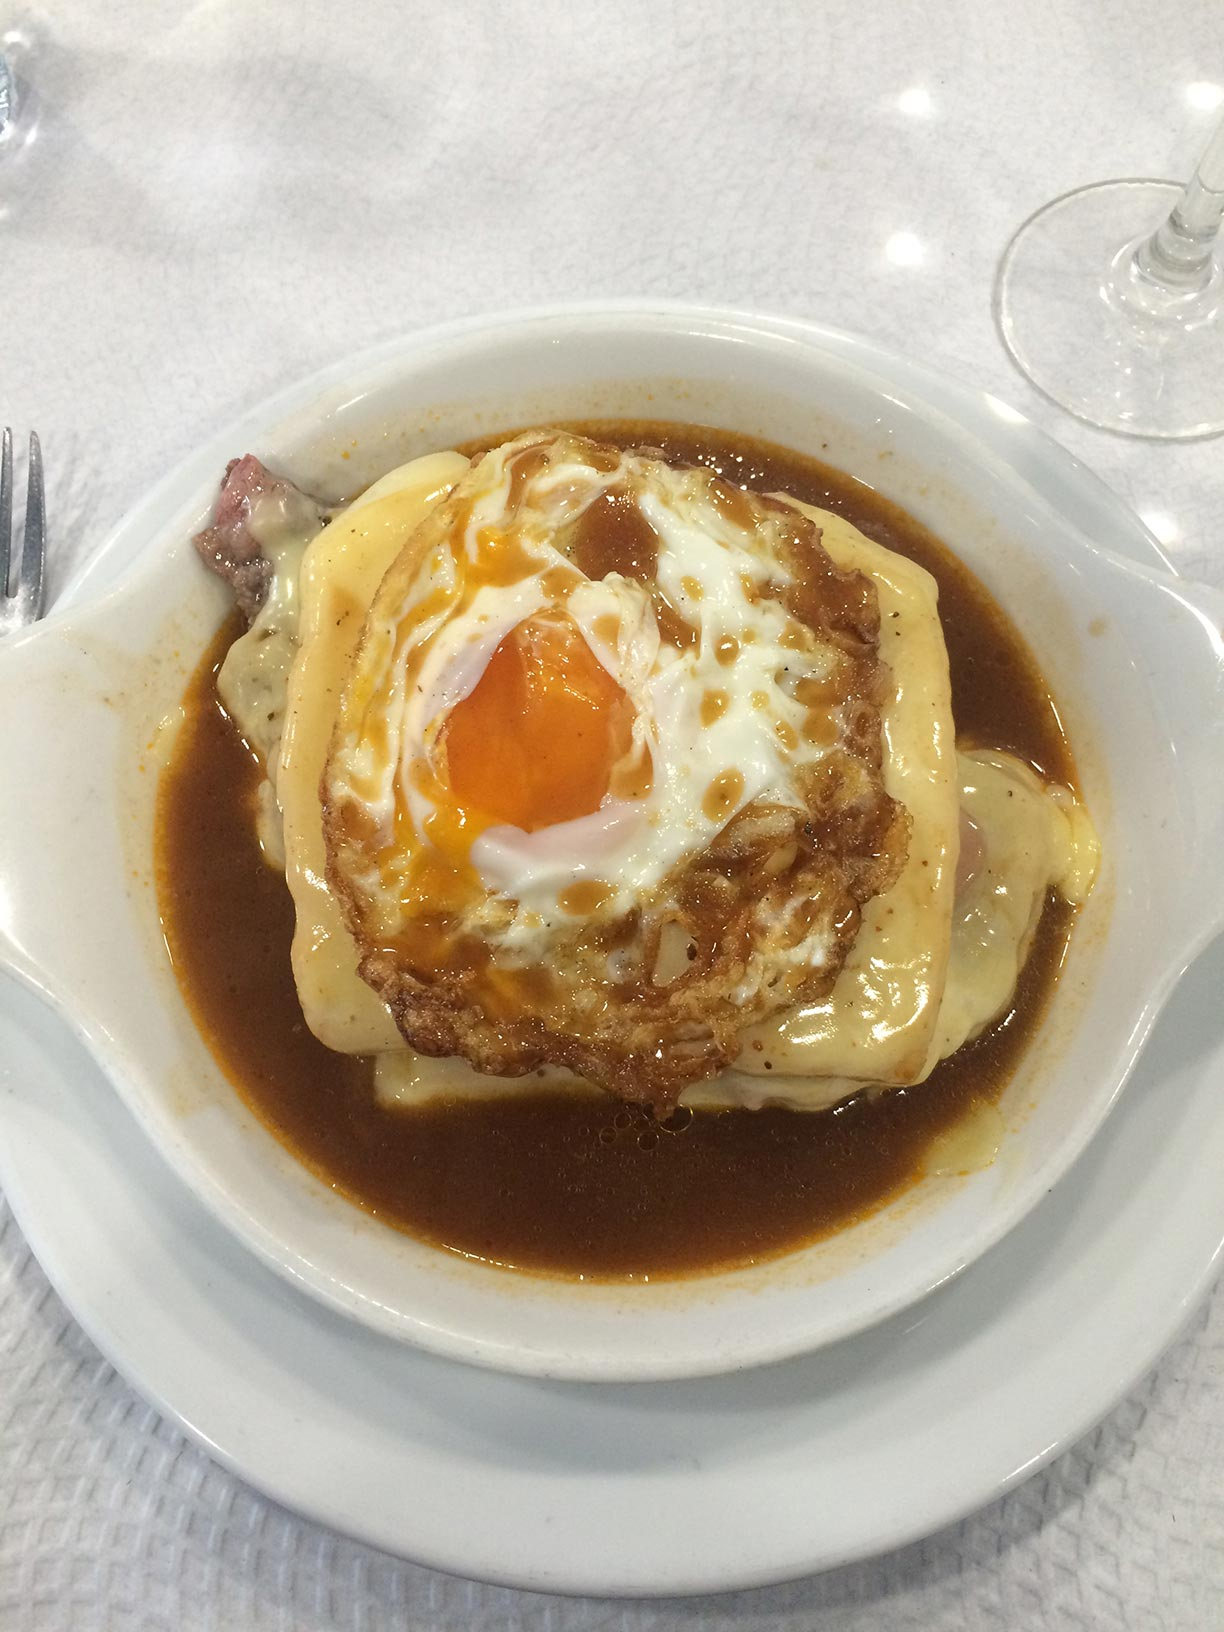 The famous Francesinha sandwich in Porto, Portugal with an egg on top and soaked in gravy.